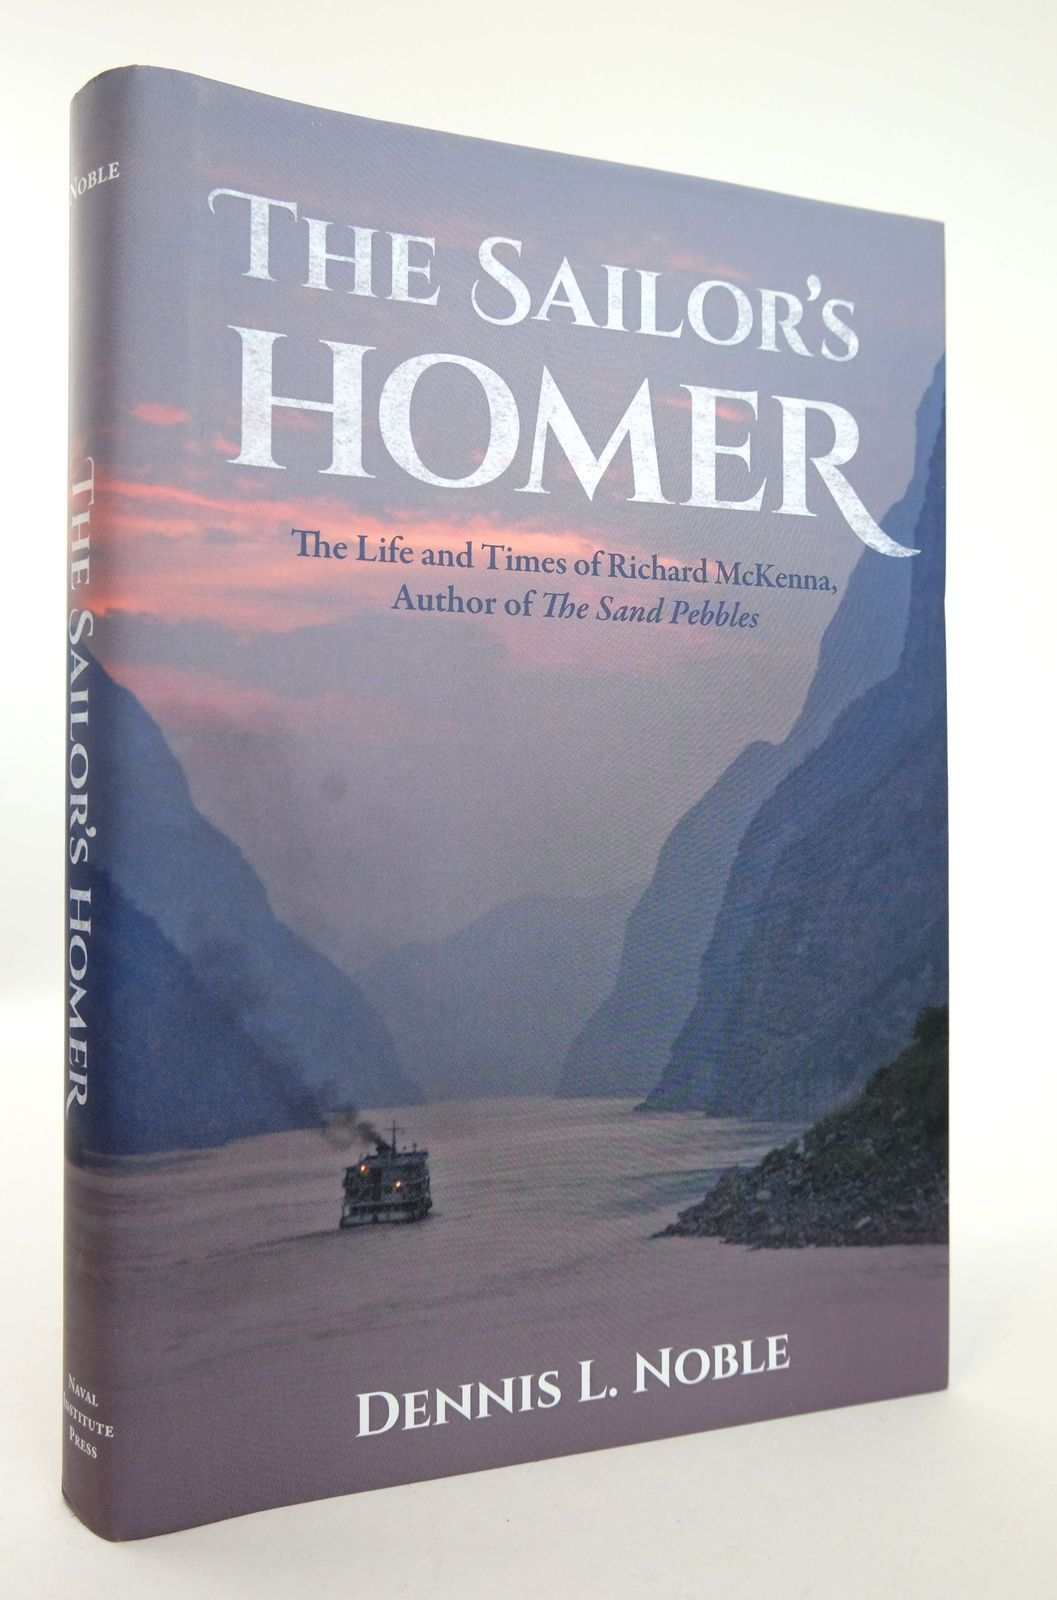 Photo of THE SAILOR'S HOMER: THE LIFE AND TIMES OF RICHARD MCKENNA- Stock Number: 1818947